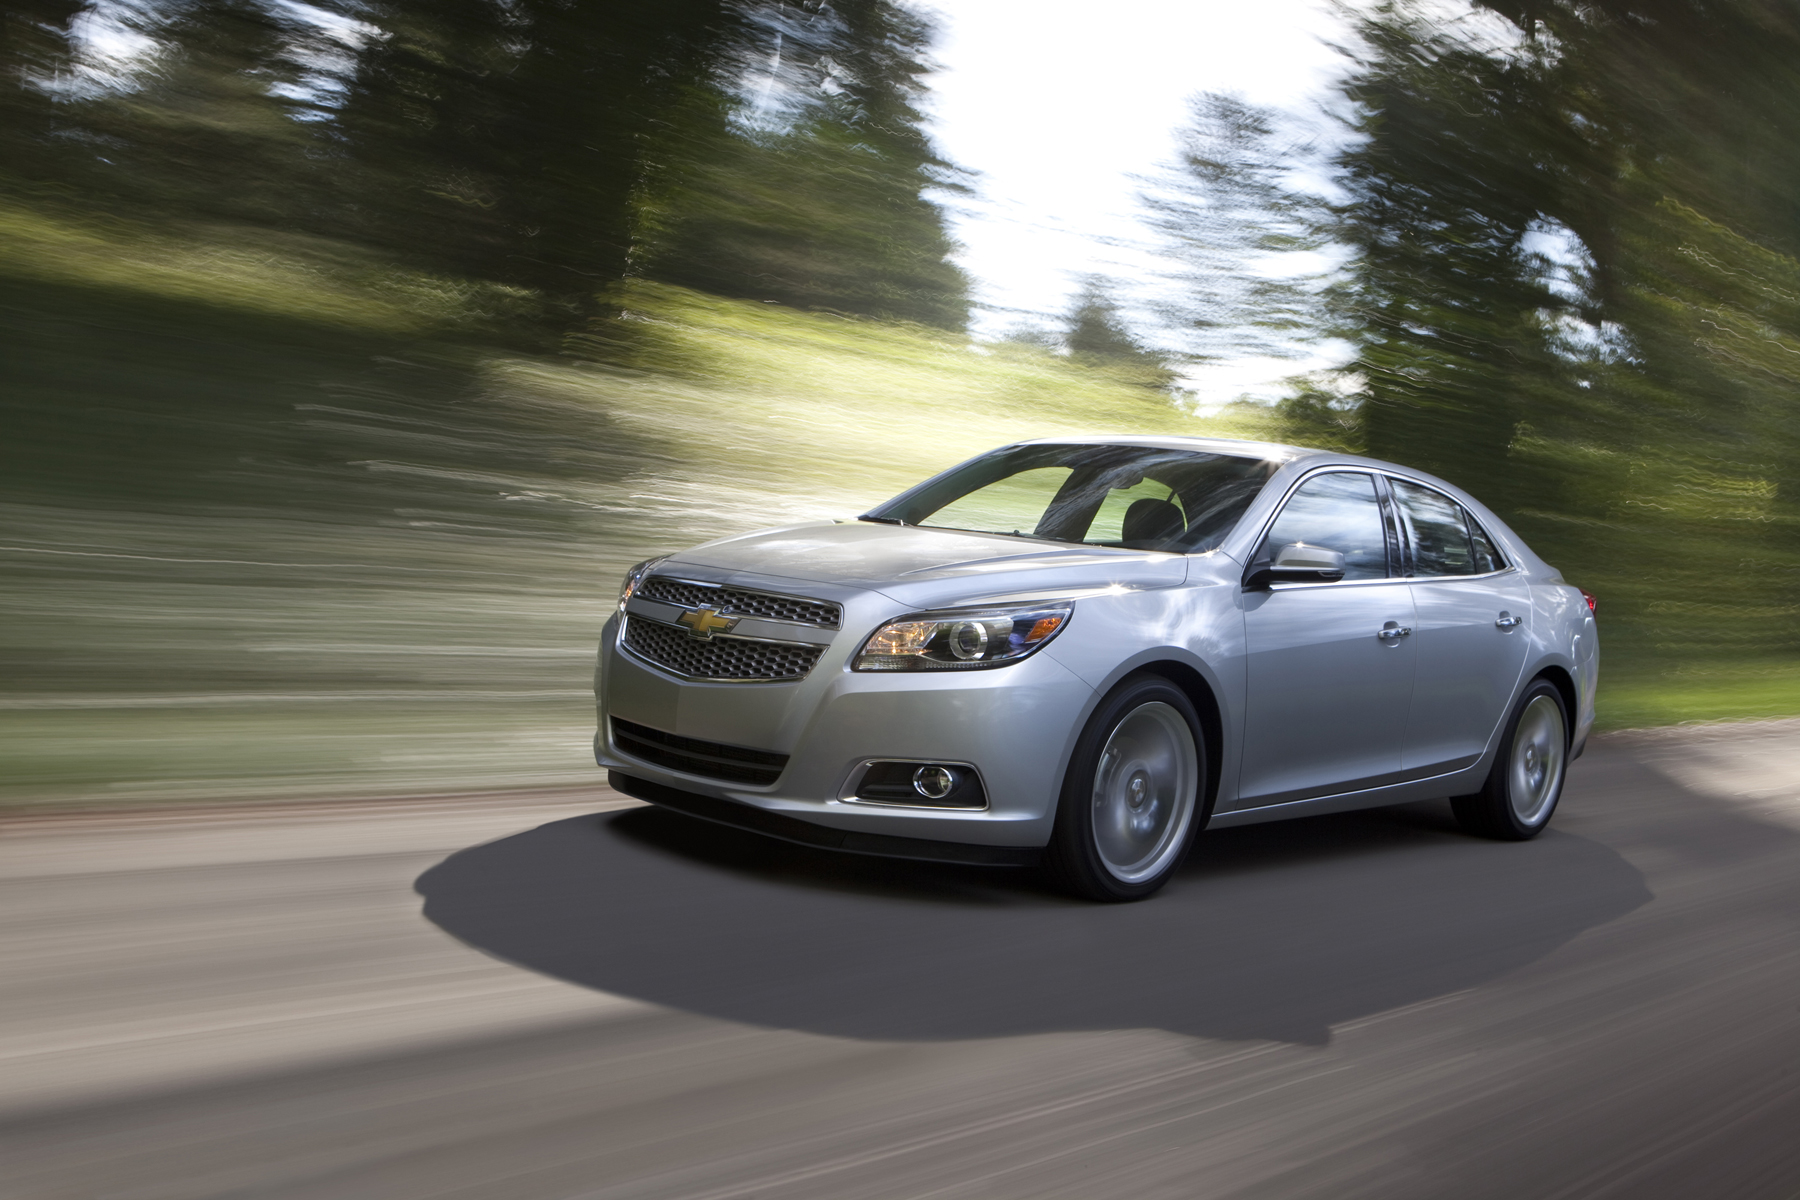 Manufacturer photo: Chevrolet offers a stylish, affordable and dependable family car with a little something extra